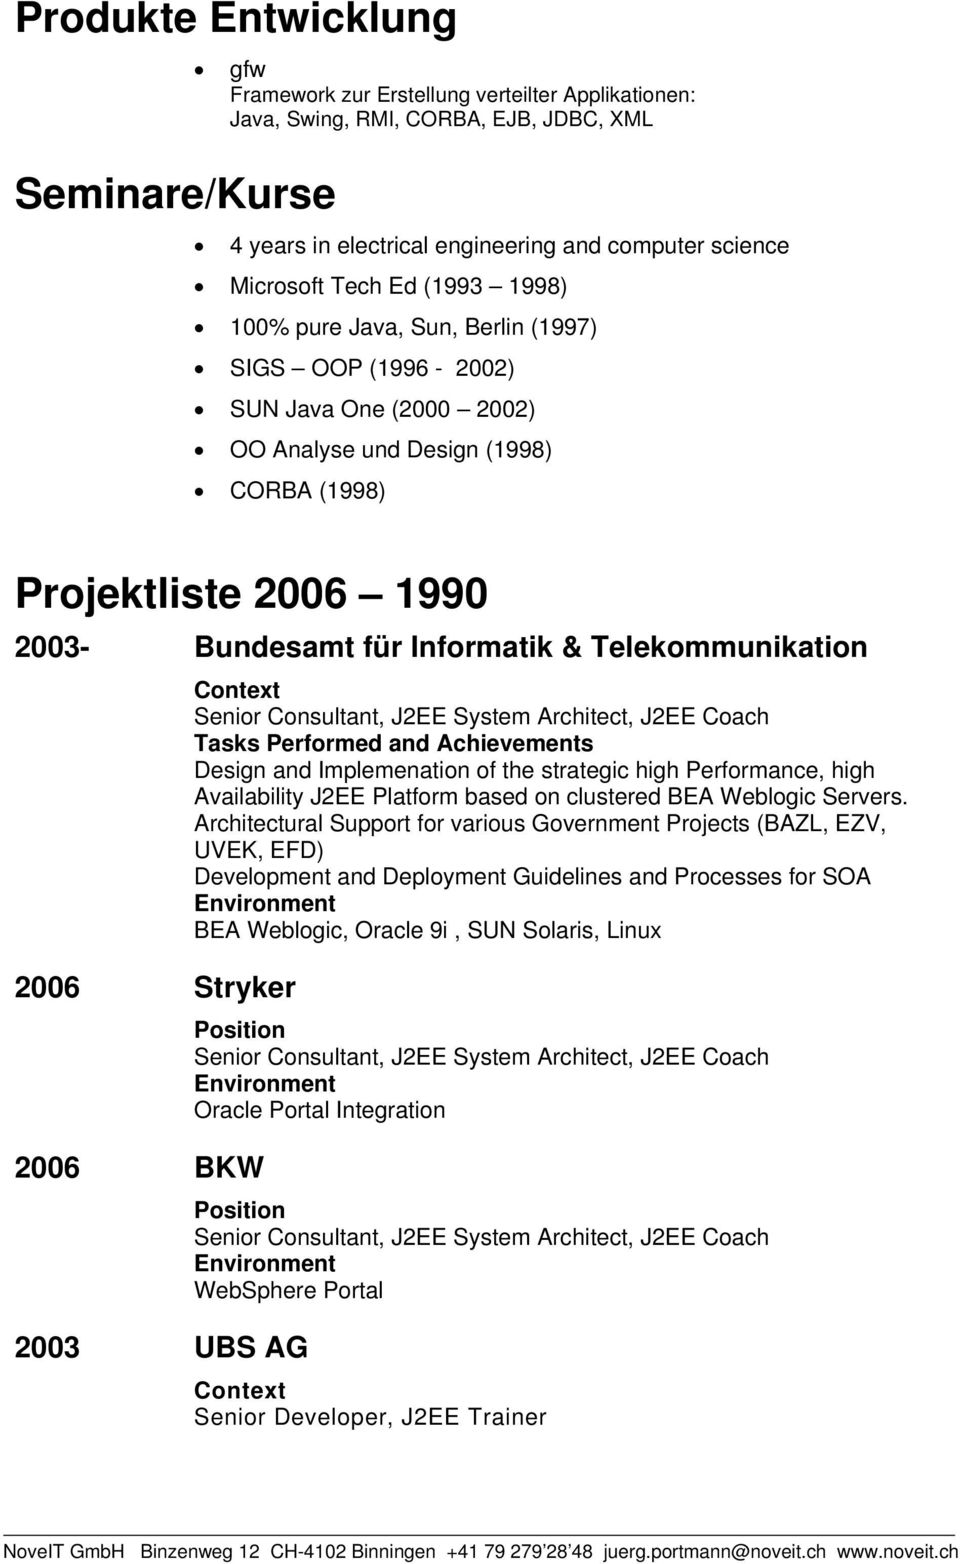 Telekommunikation 2006 Stryker 2006 BKW 2003 UBS AG Design and Implemenation of the strategic high Performance, high Availability J2EE Platform based on clustered BEA Weblogic Servers.